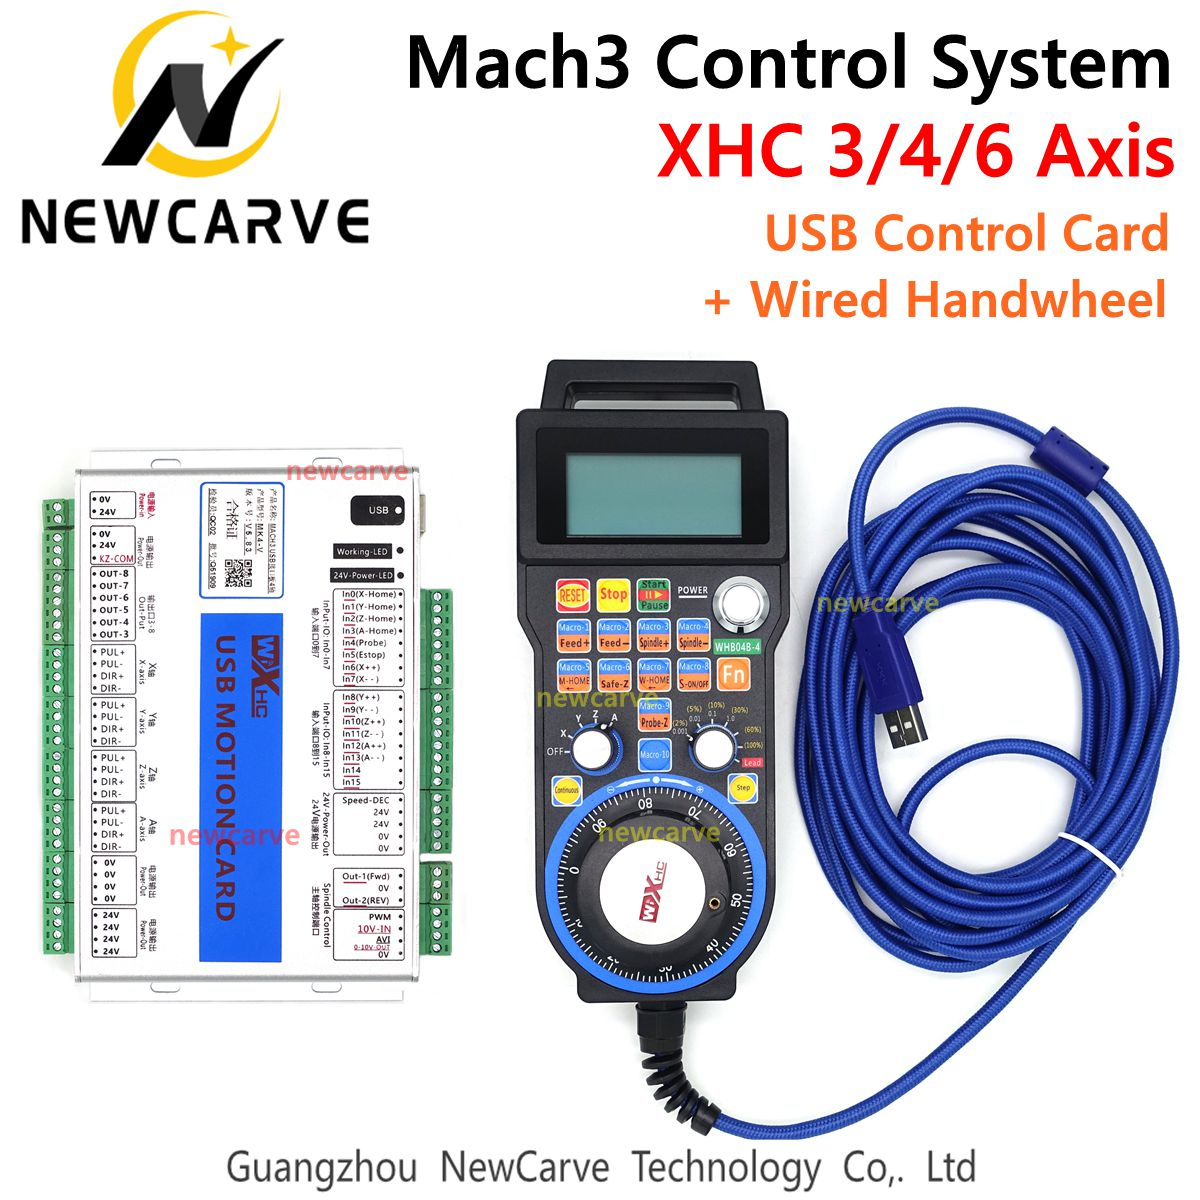 Mach3 Controller Kit XHC MKX-V 2MHz USB Breakout Board 3 4 6 Axis Motion Control Card With Wired MPG Pendant Handwheel LHB04B